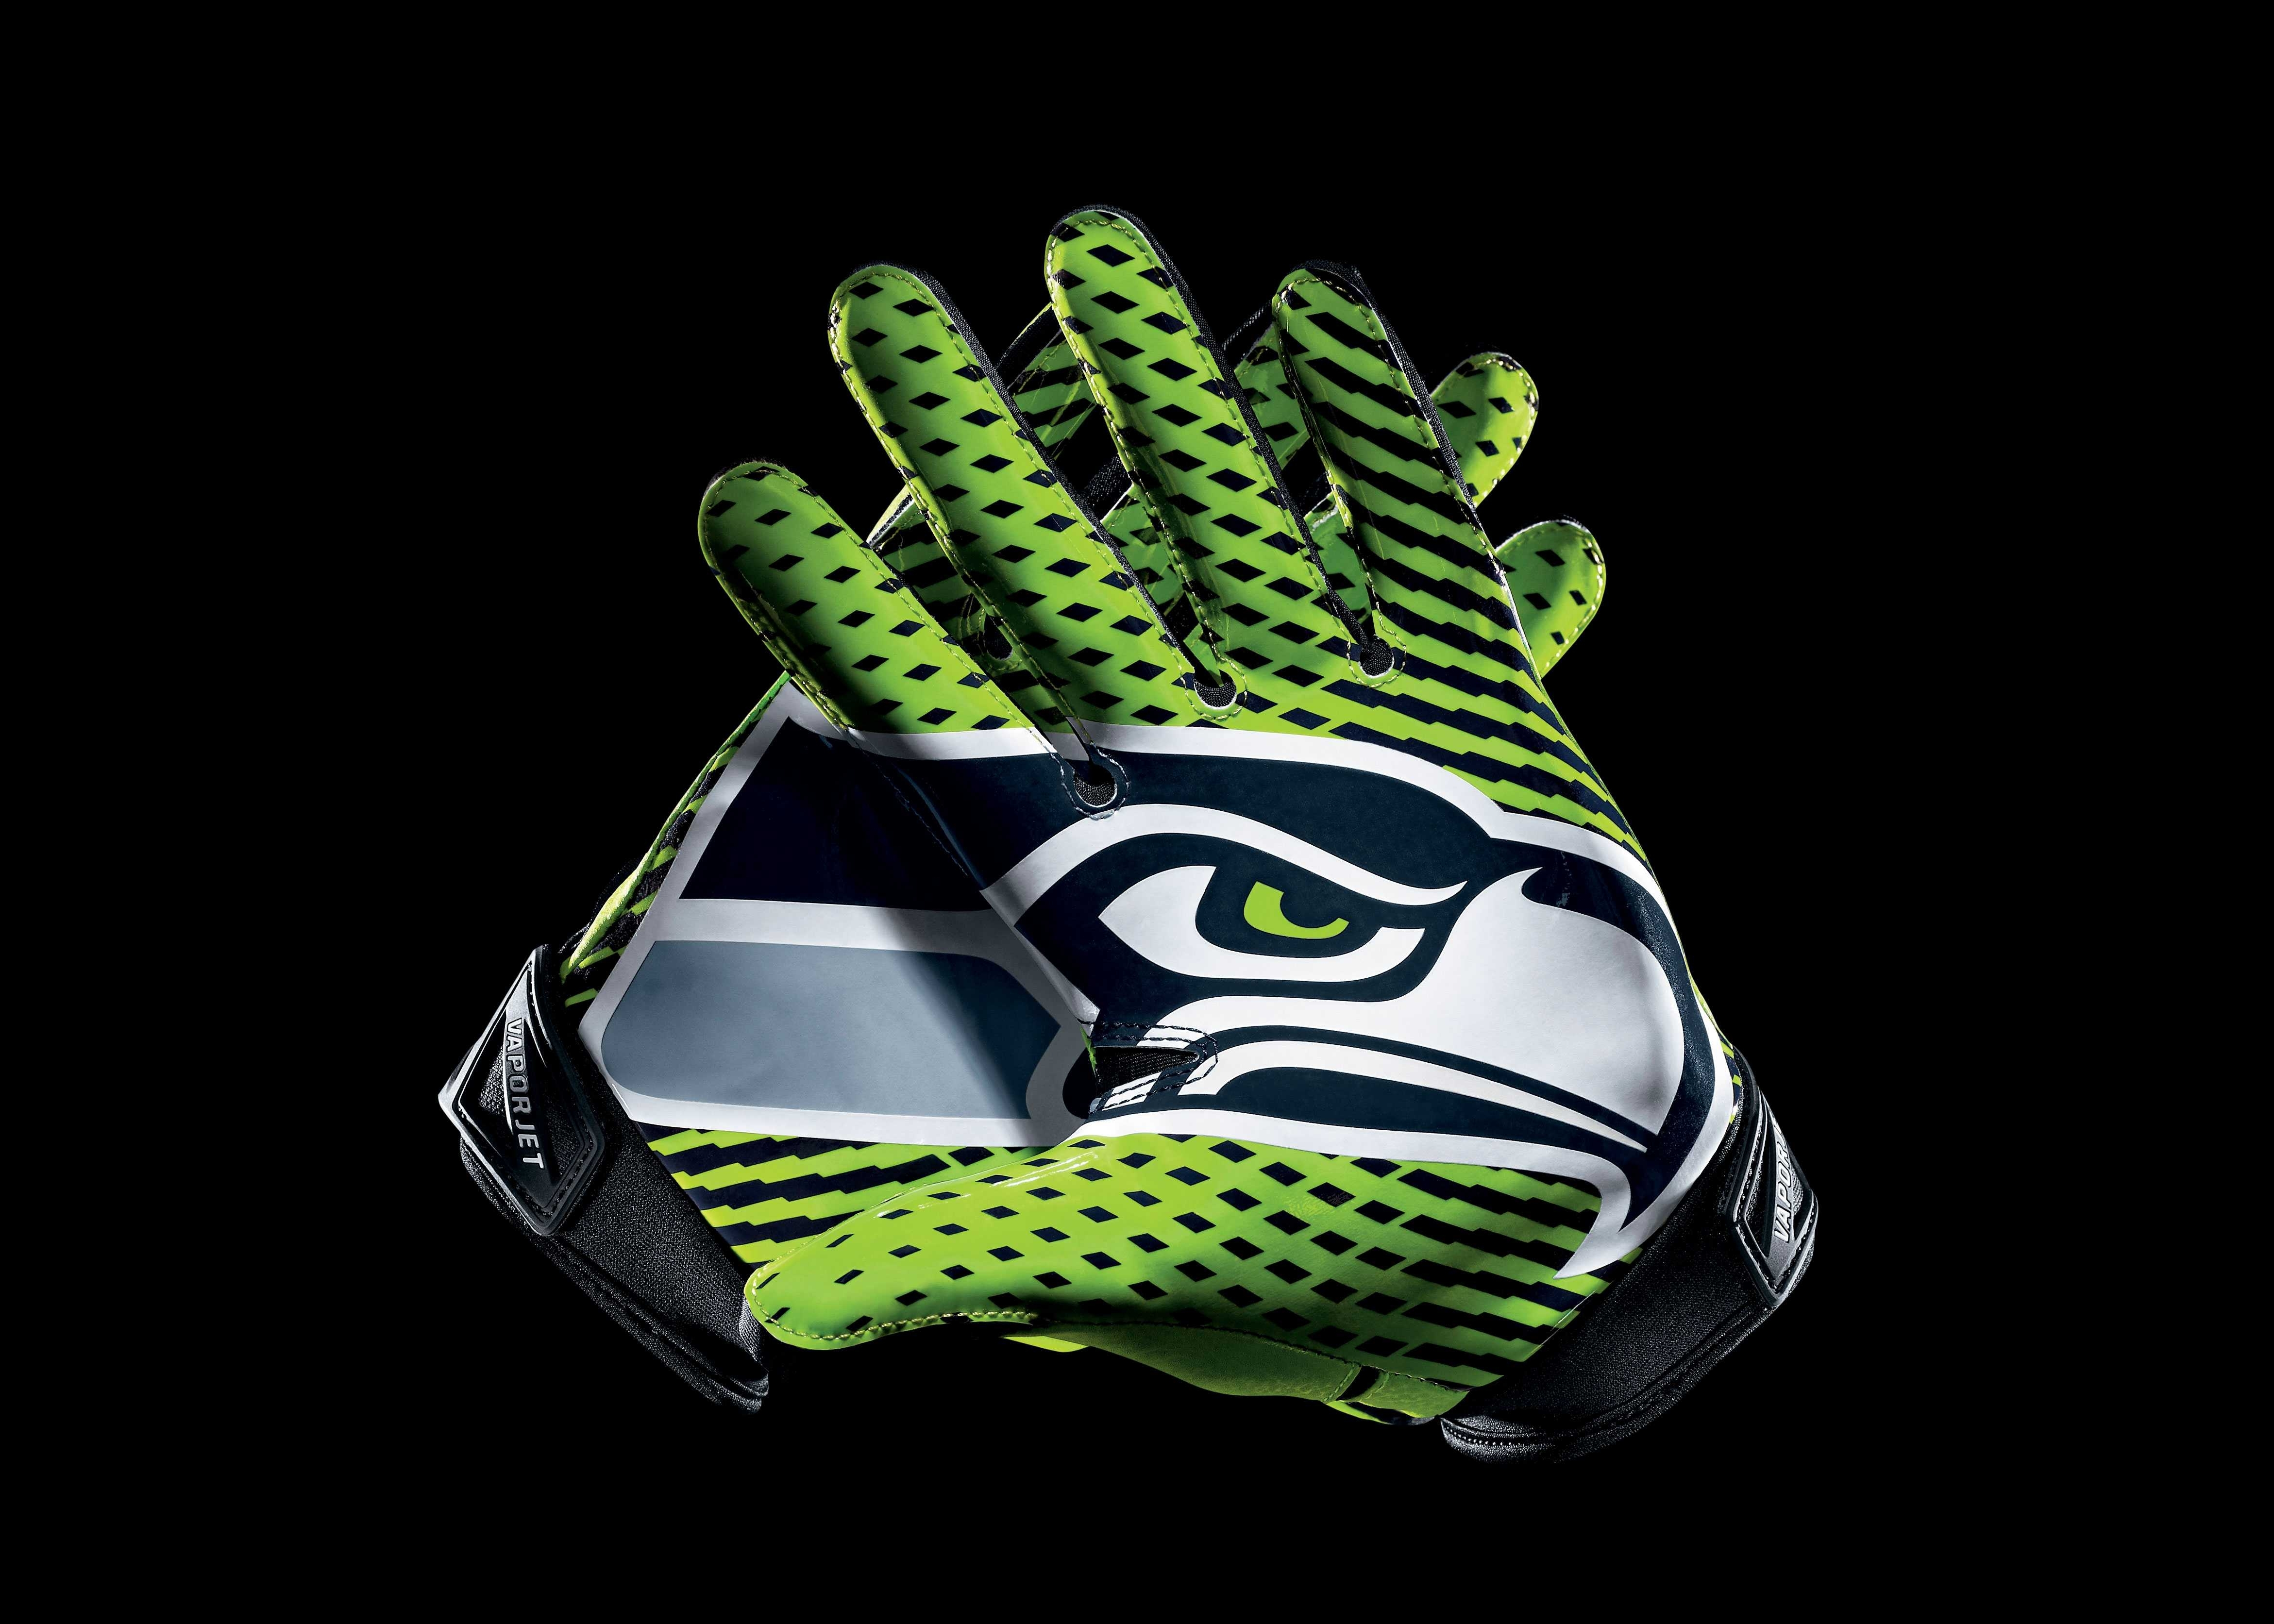 seattle seahawks wallpaper with gloves px 2017 images | wallvie